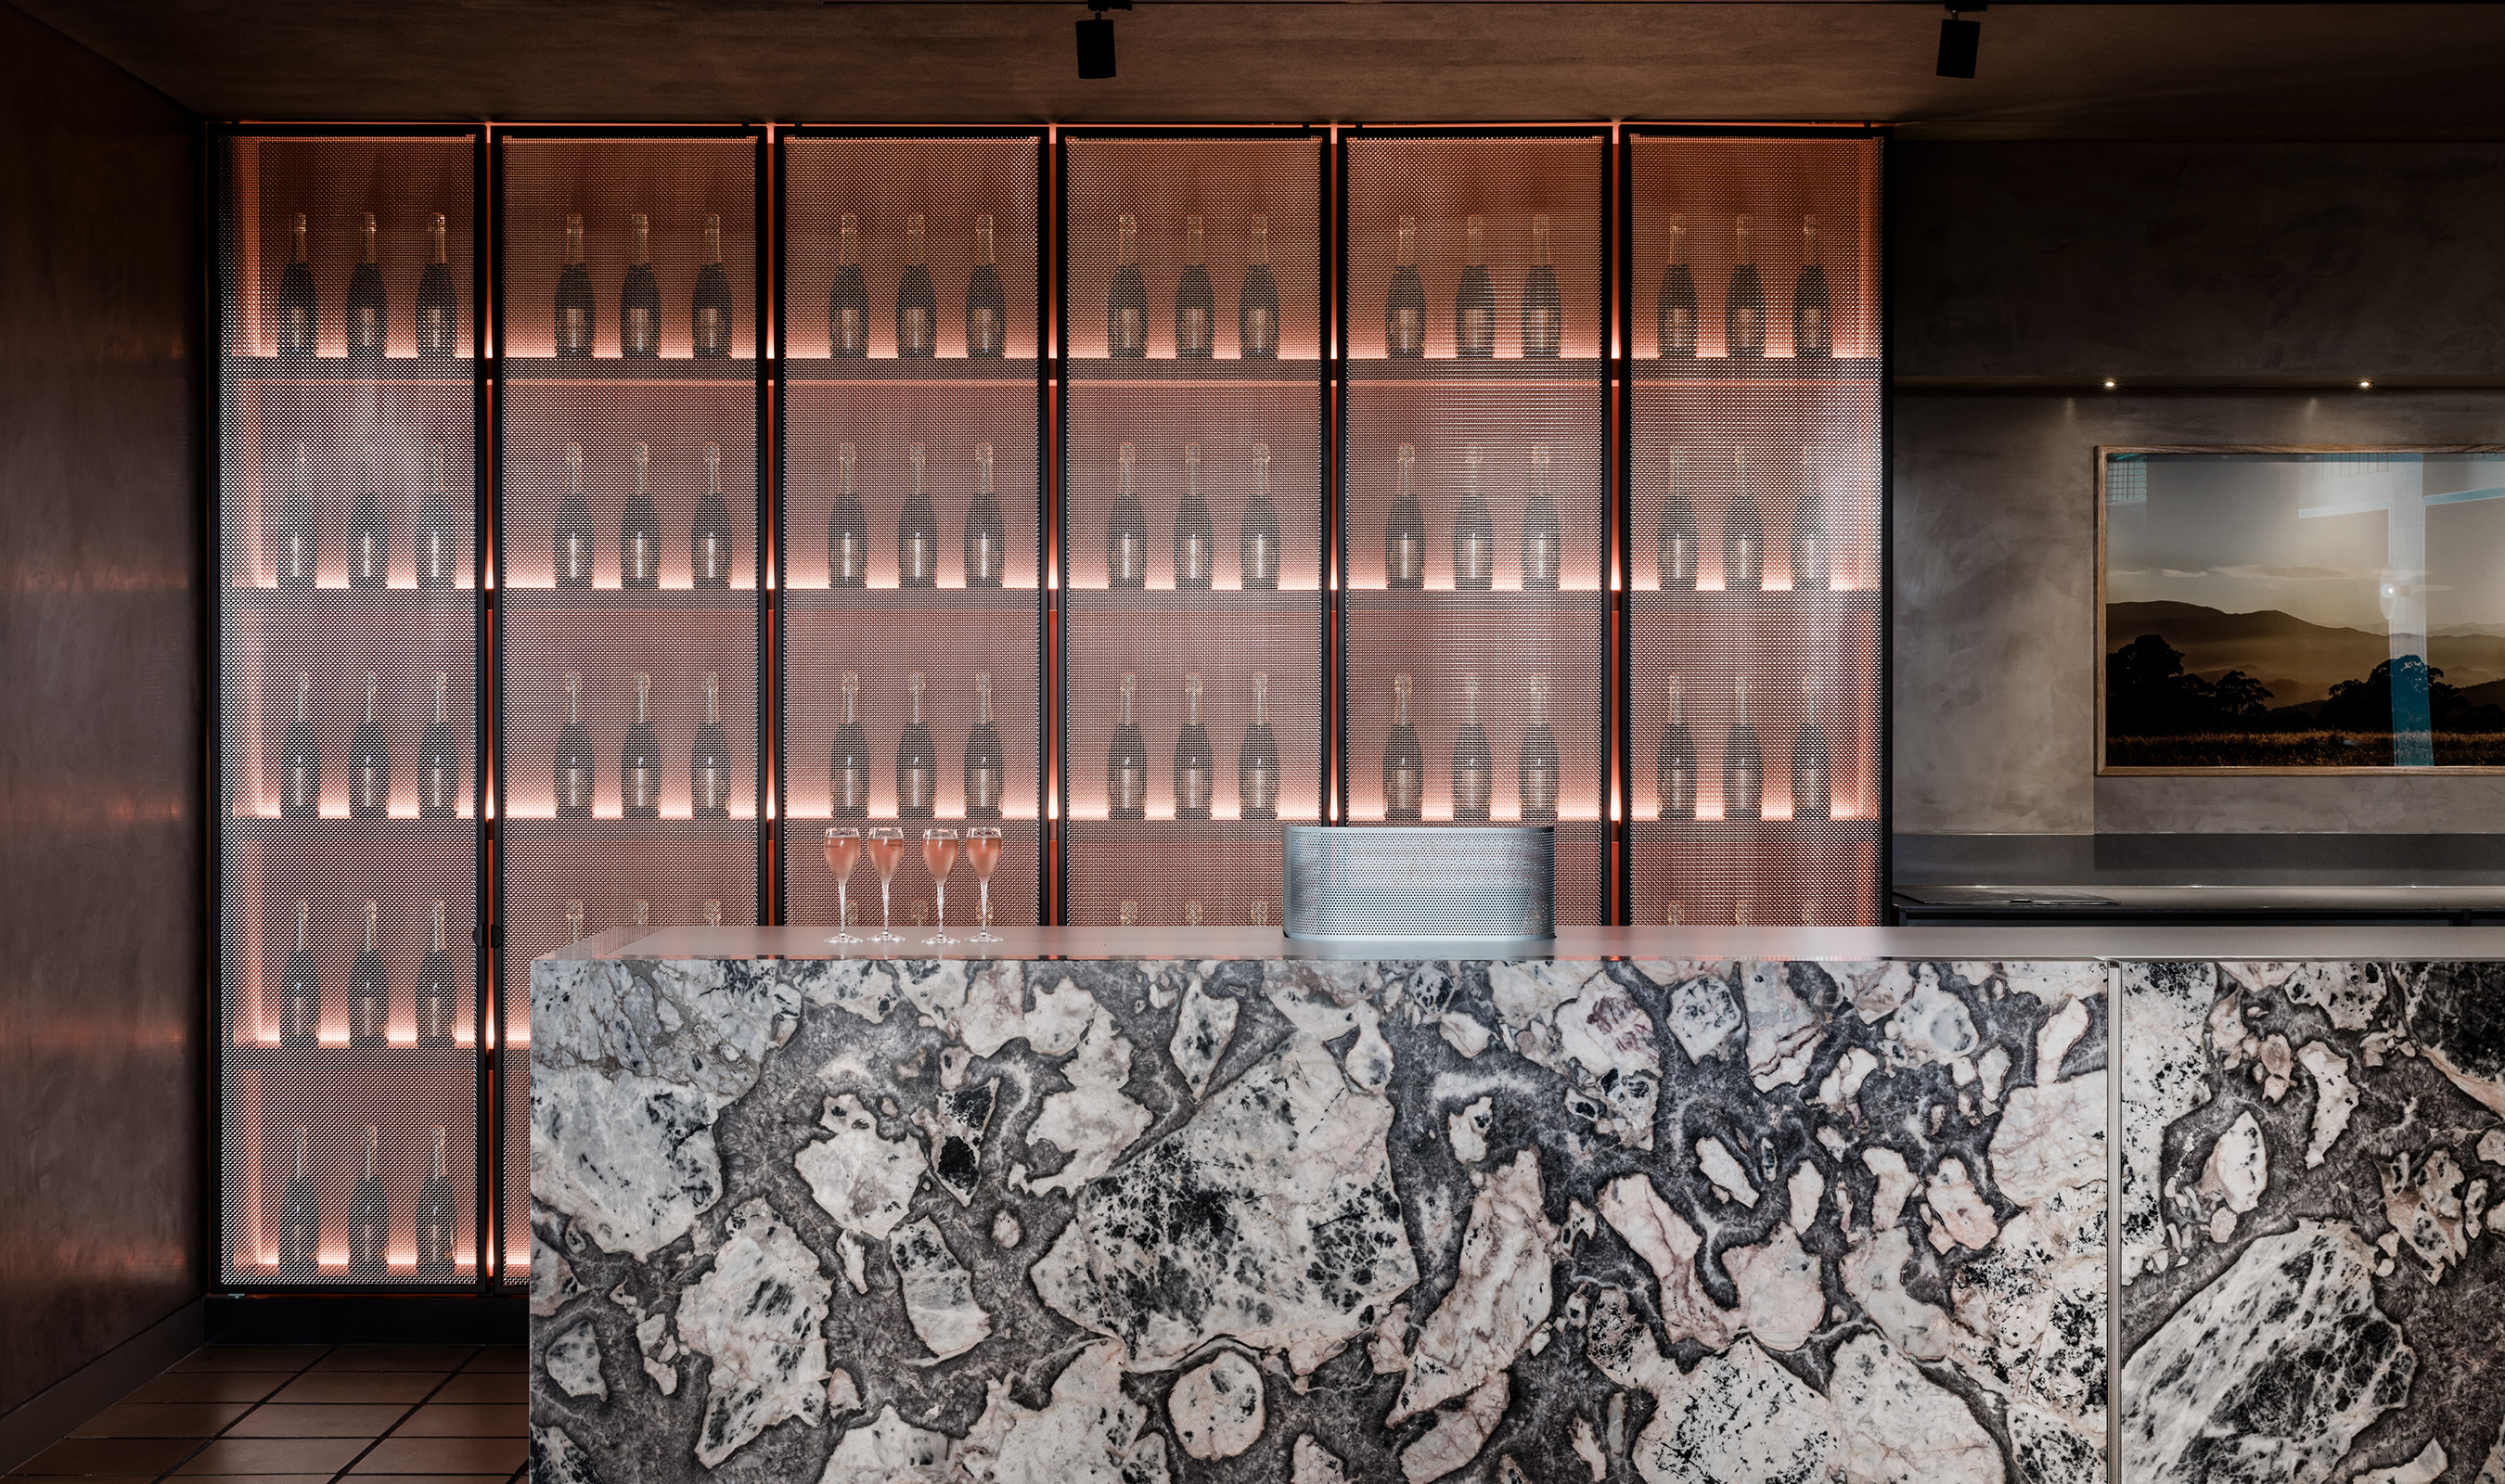 The blush color of the shelving and the wine within the bottles is beautifully complimented by the sparkle of the stainless steel - appearing as bubble would within the champagne and wine.